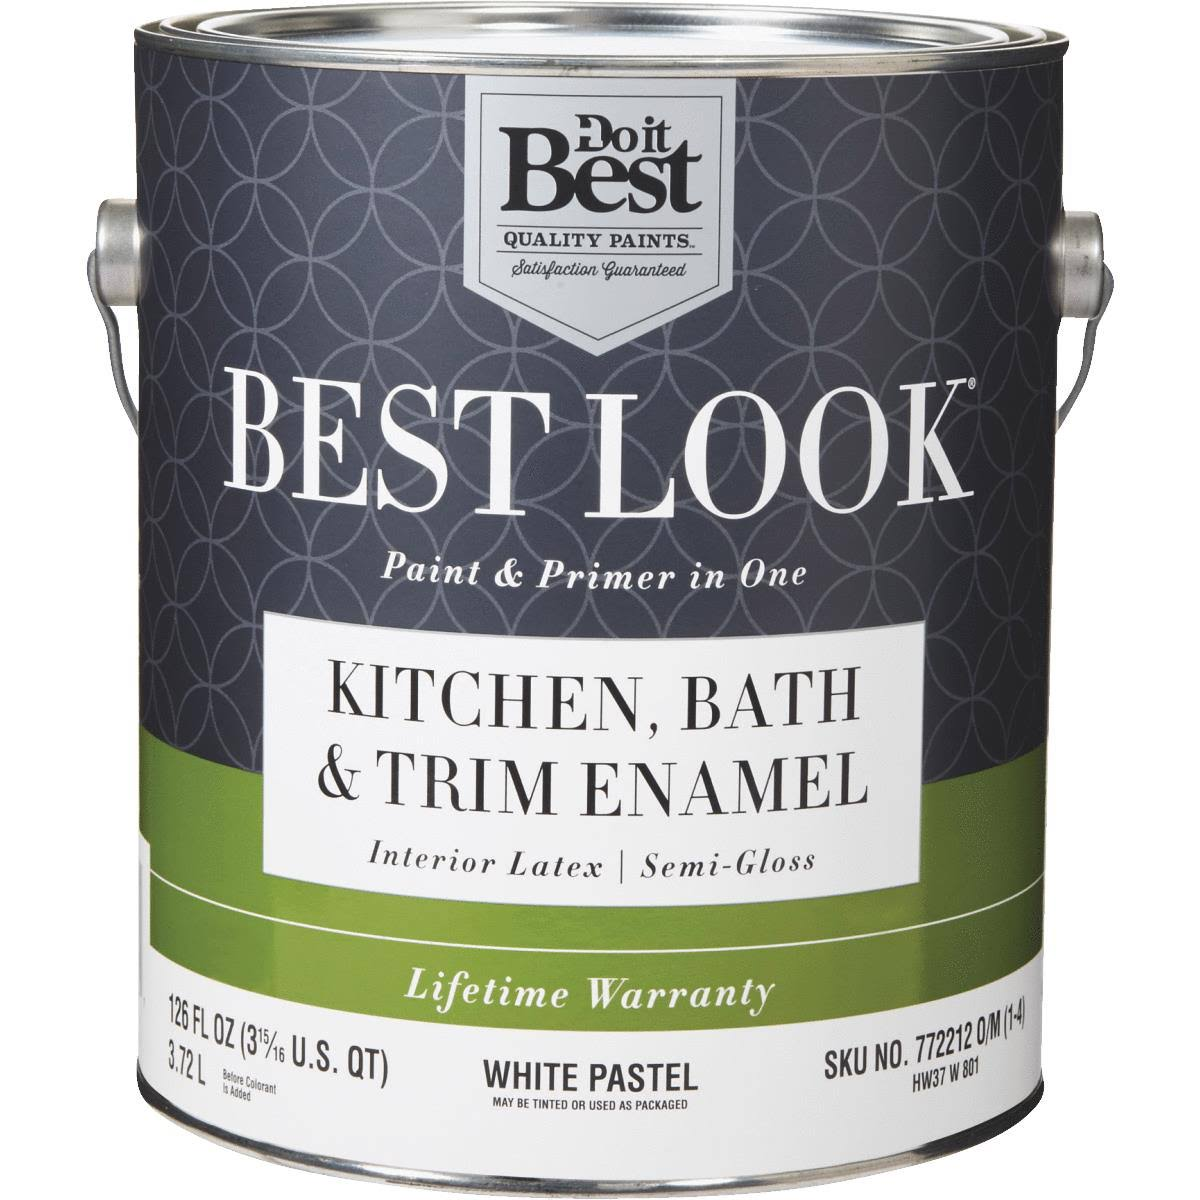 - HW37W0801-16 Best Look Latex Paint & Primer in One Kitchen Bath & Trim Semi-Gloss Interior Wall Paint